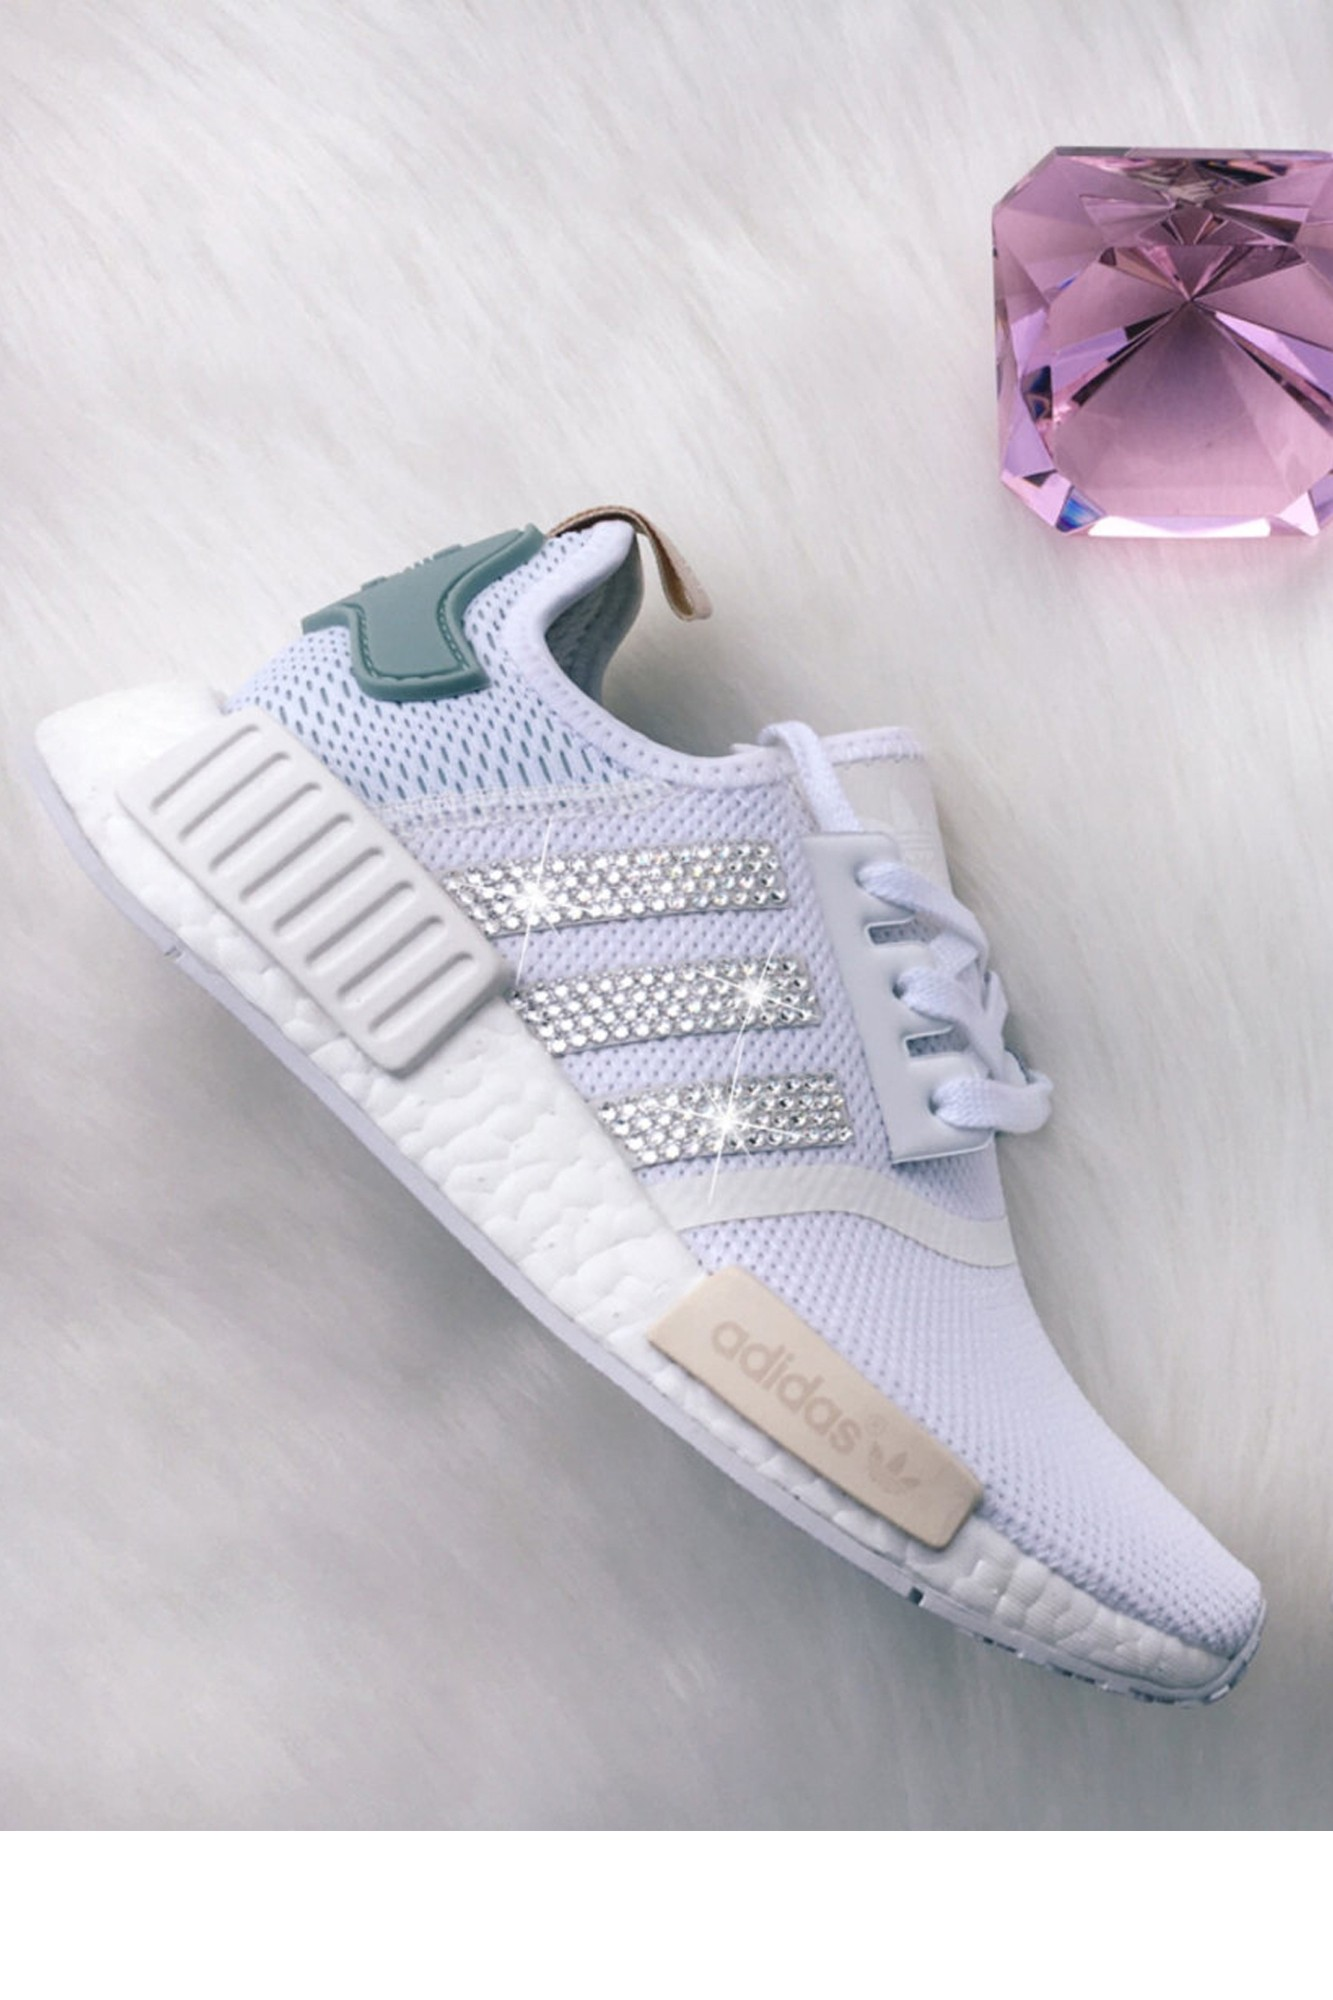 670c2ee892b97 Women's Light blue Adidas NMD R1 with Silver Swarovski Crystals LIMITED  EDITION